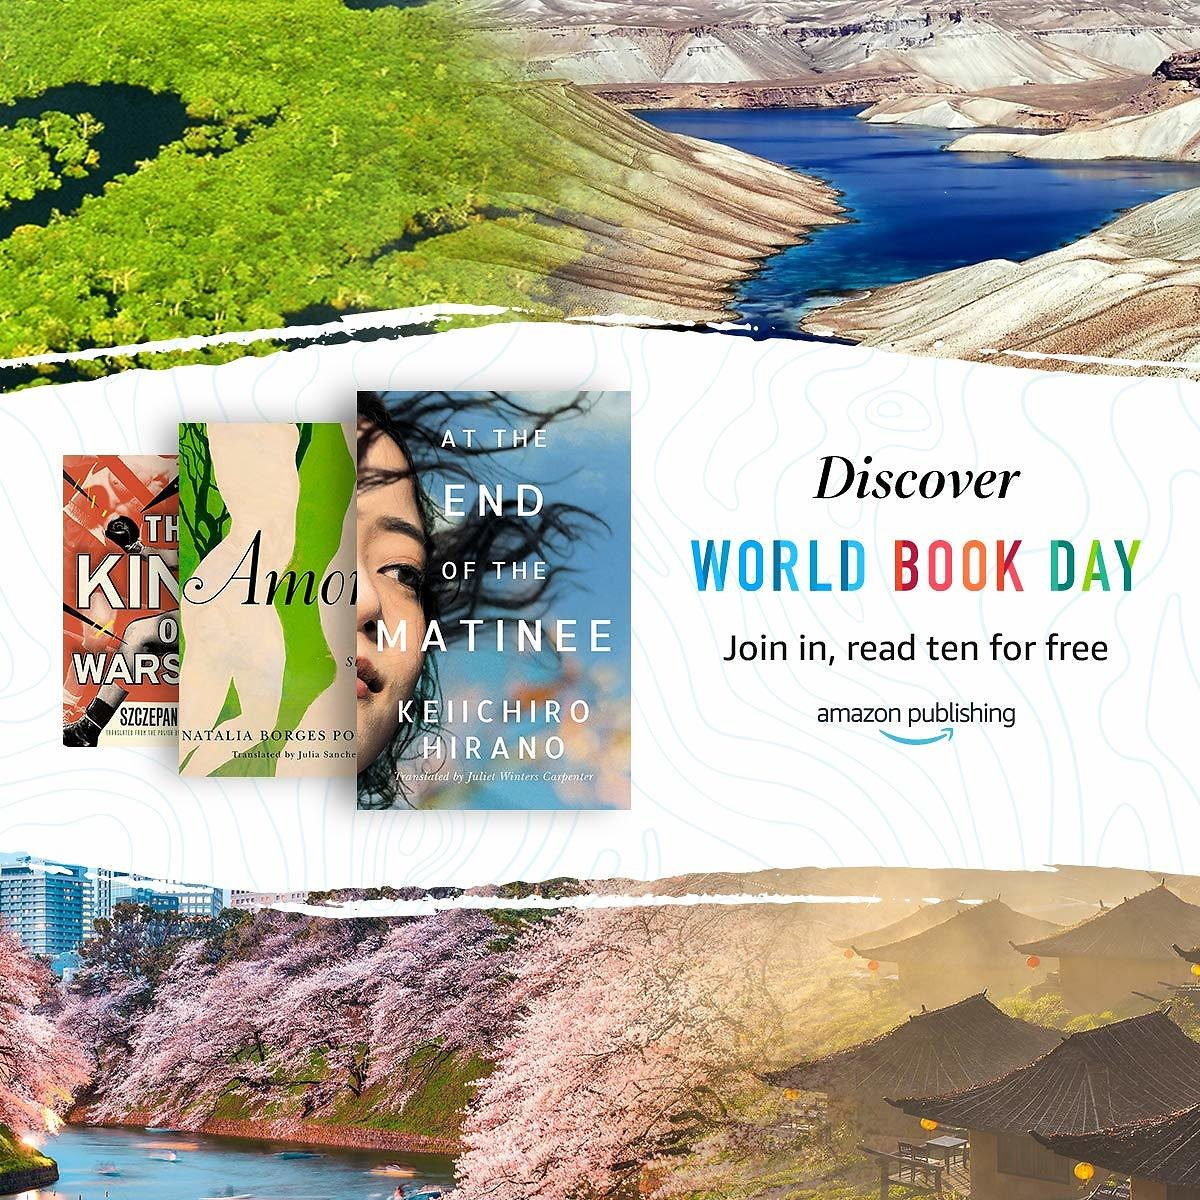 Discover World Book Day - Free Ebooks